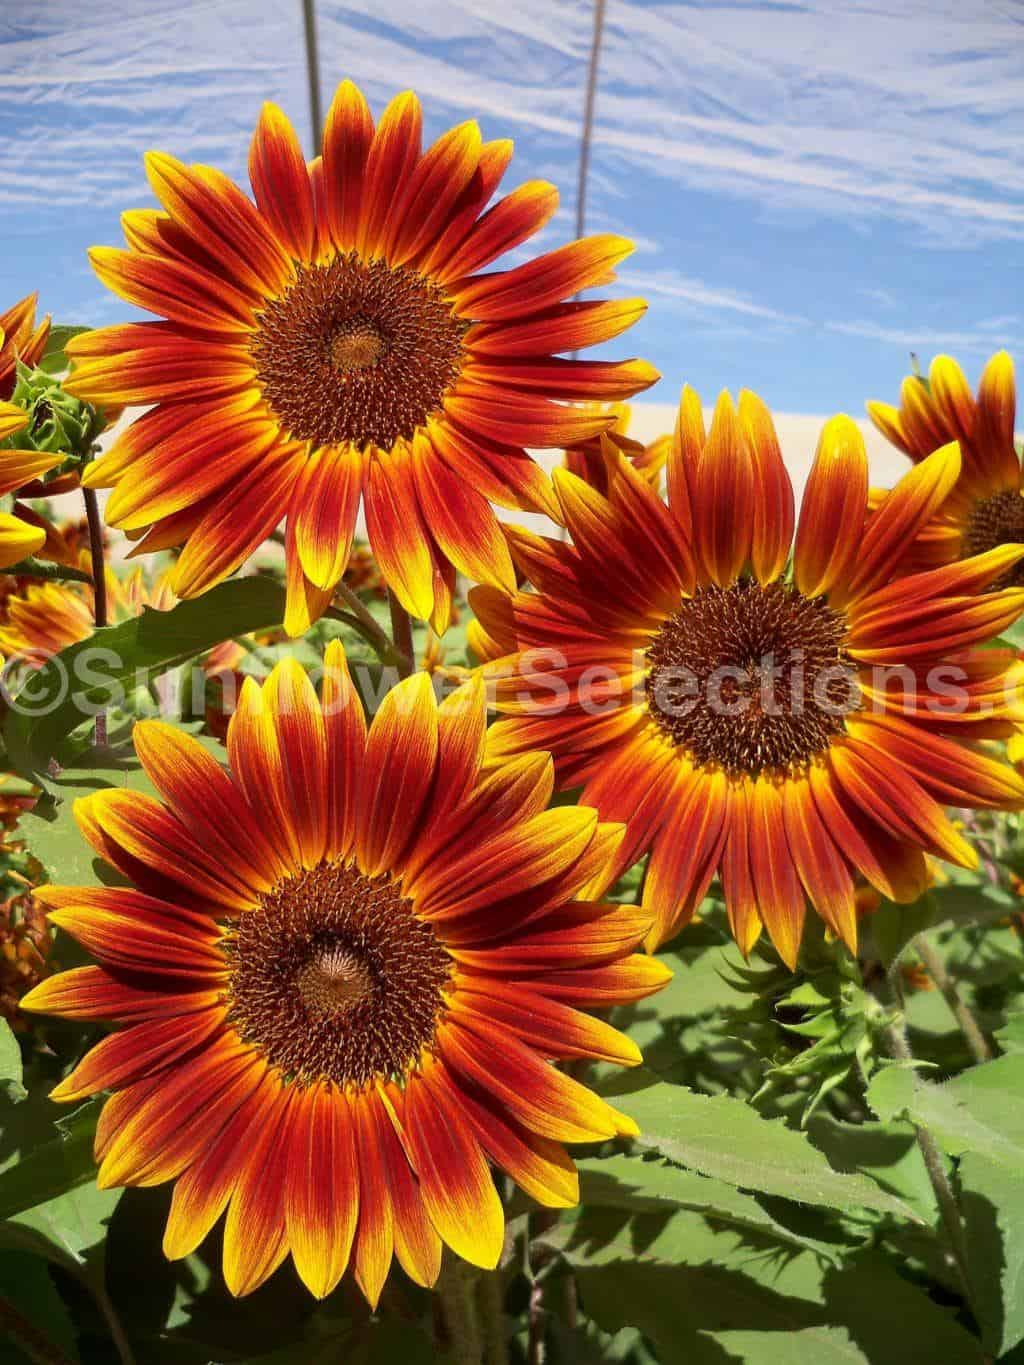 Strawberry Plants For Sale Australia Little Becka Sunflowers Sunflowerselections